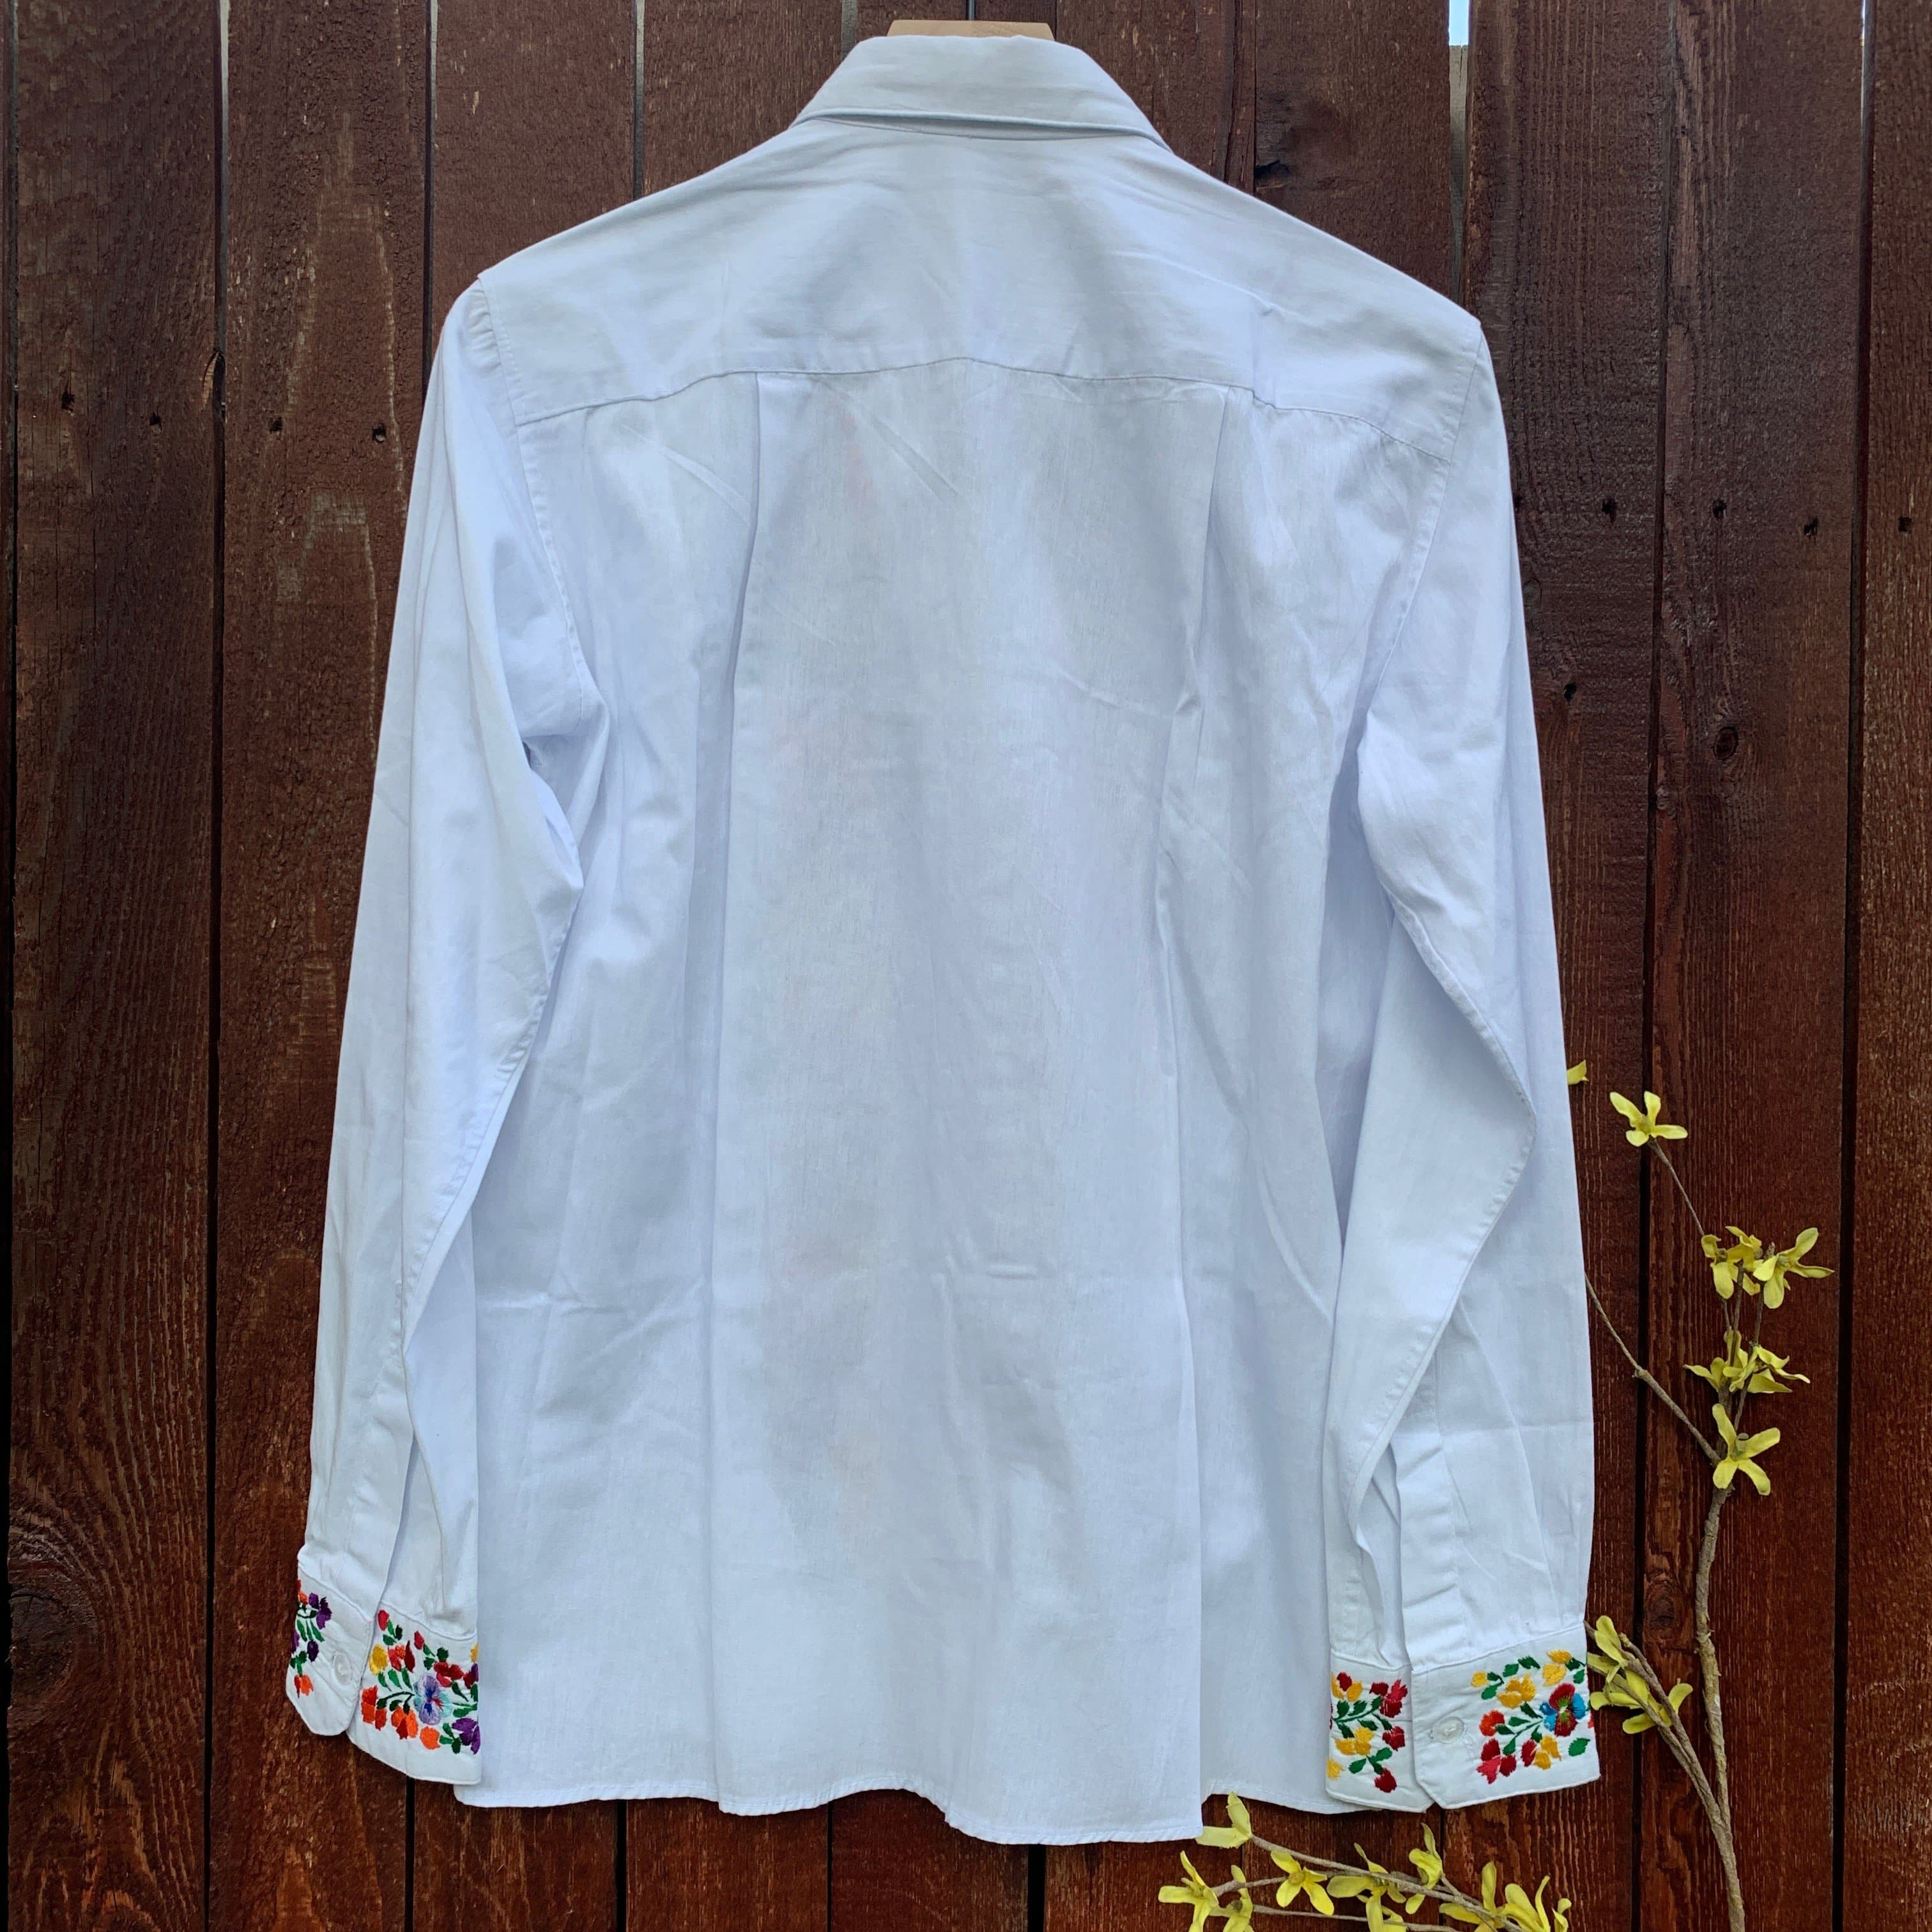 Pablo Hand Embroidered Button Down Shirt from Oaxaca - White & Multicolor